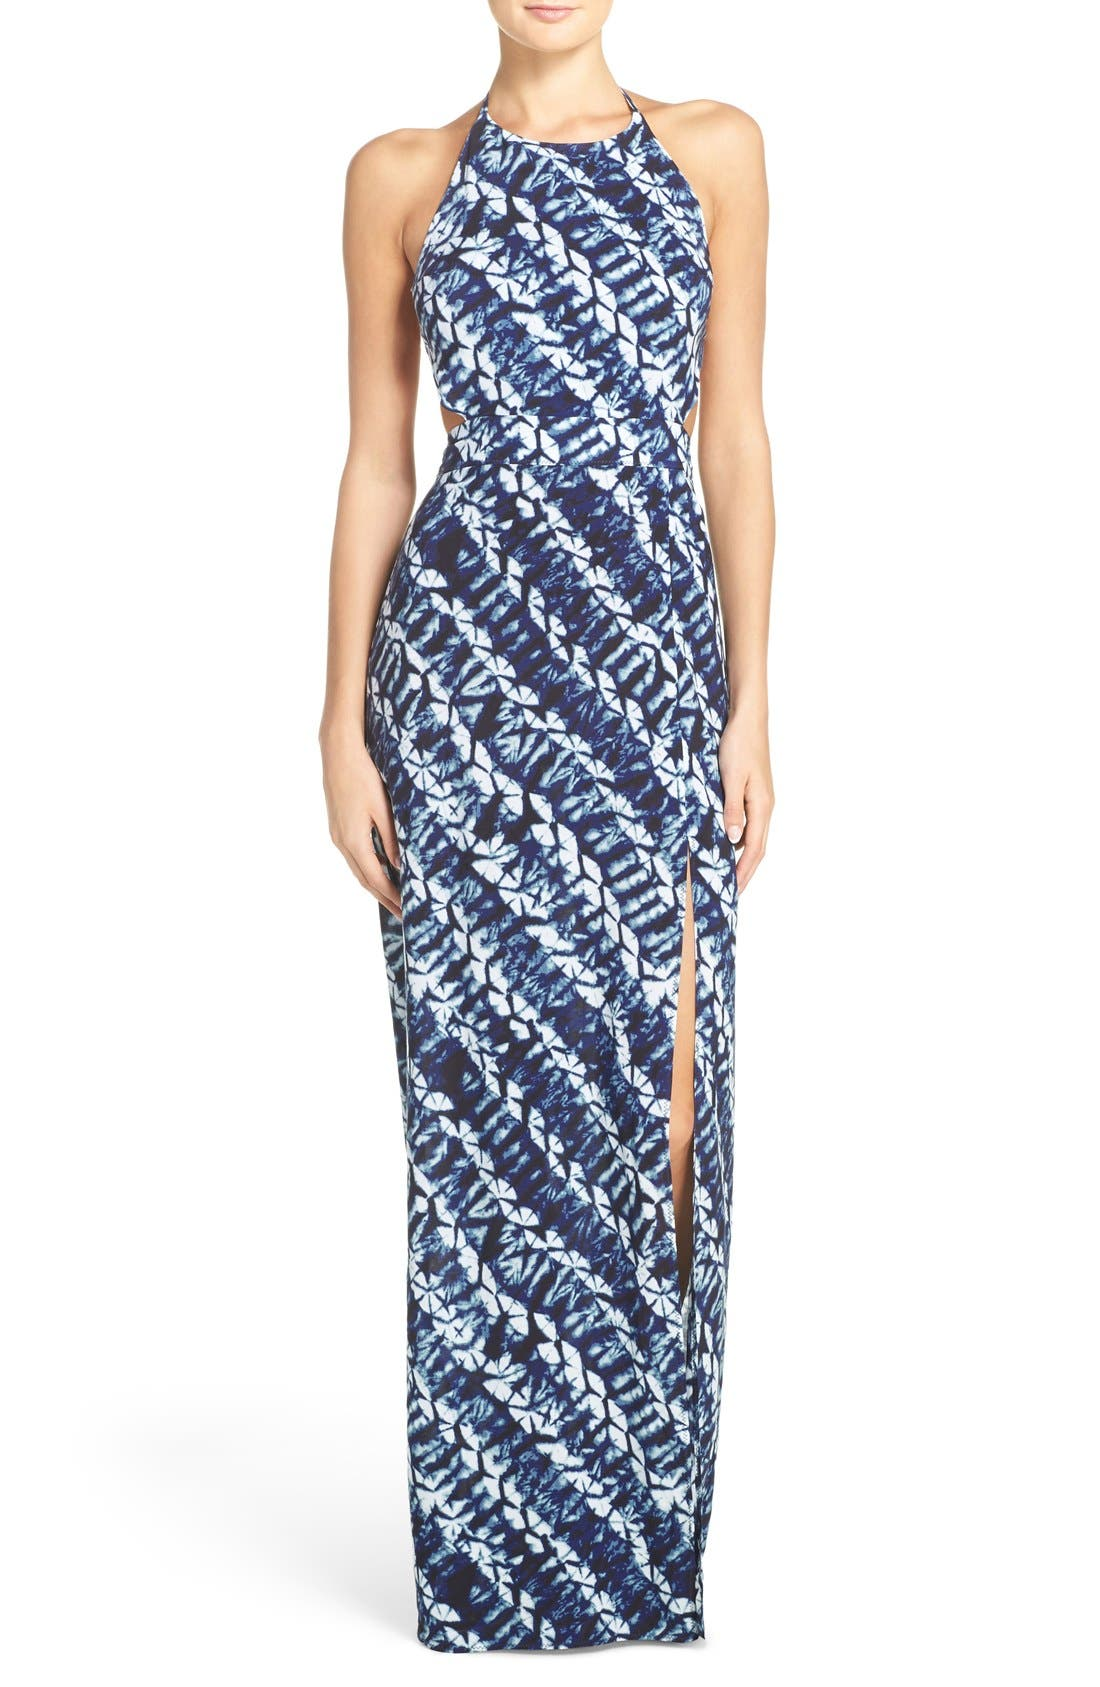 Alternate Image 1 Selected - Dolce Vita Tie-Dye Cover-Up Maxi Dress